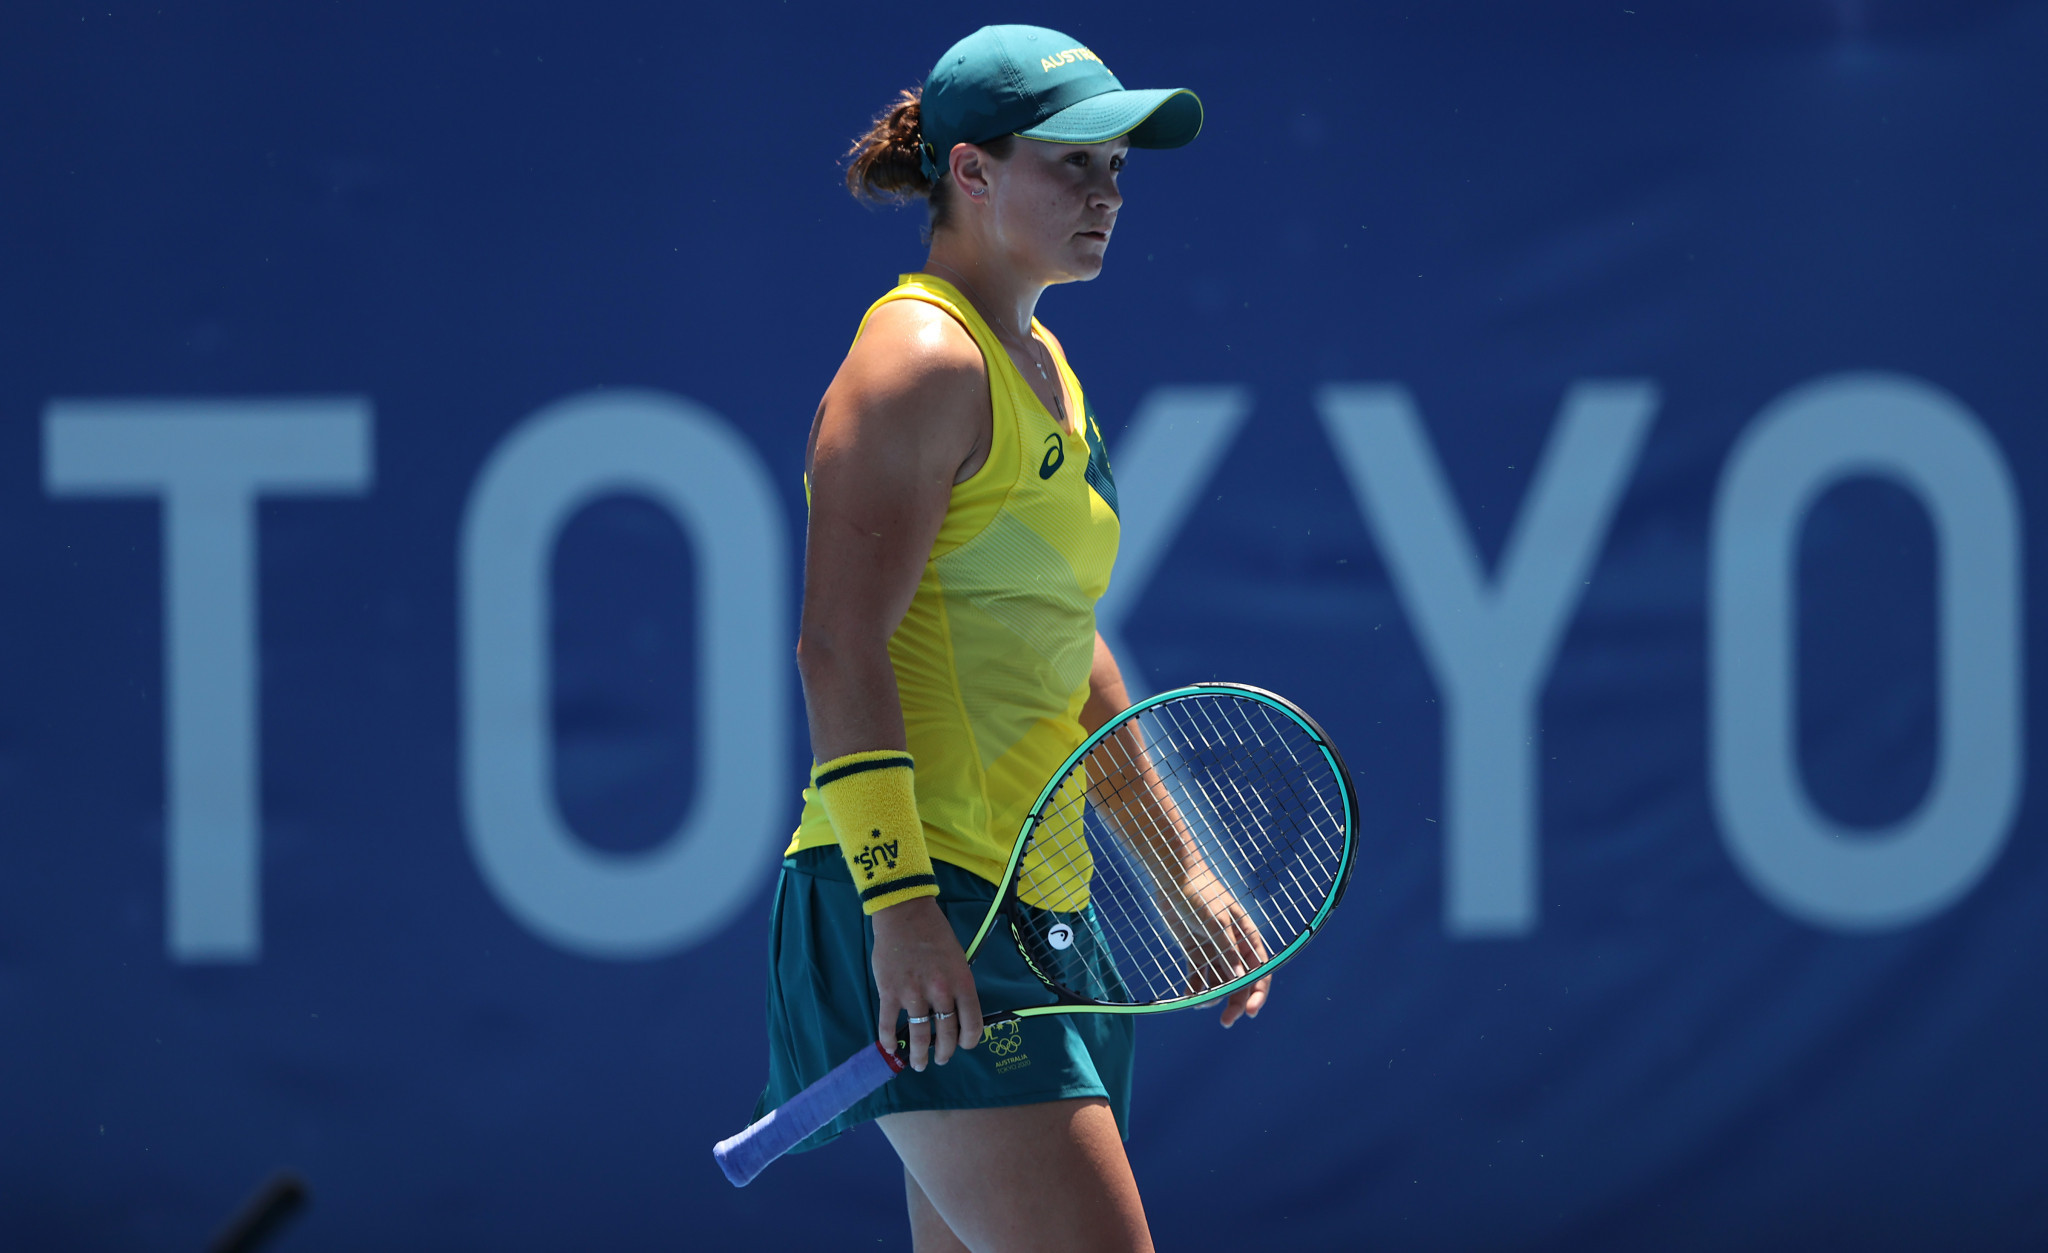 There was a shock in the women's singles tennis as Australia's Ashleigh Barty - the Wimbledon champion - fell in the first round against Sara Sorribes Tormo from Spain ©Getty Images